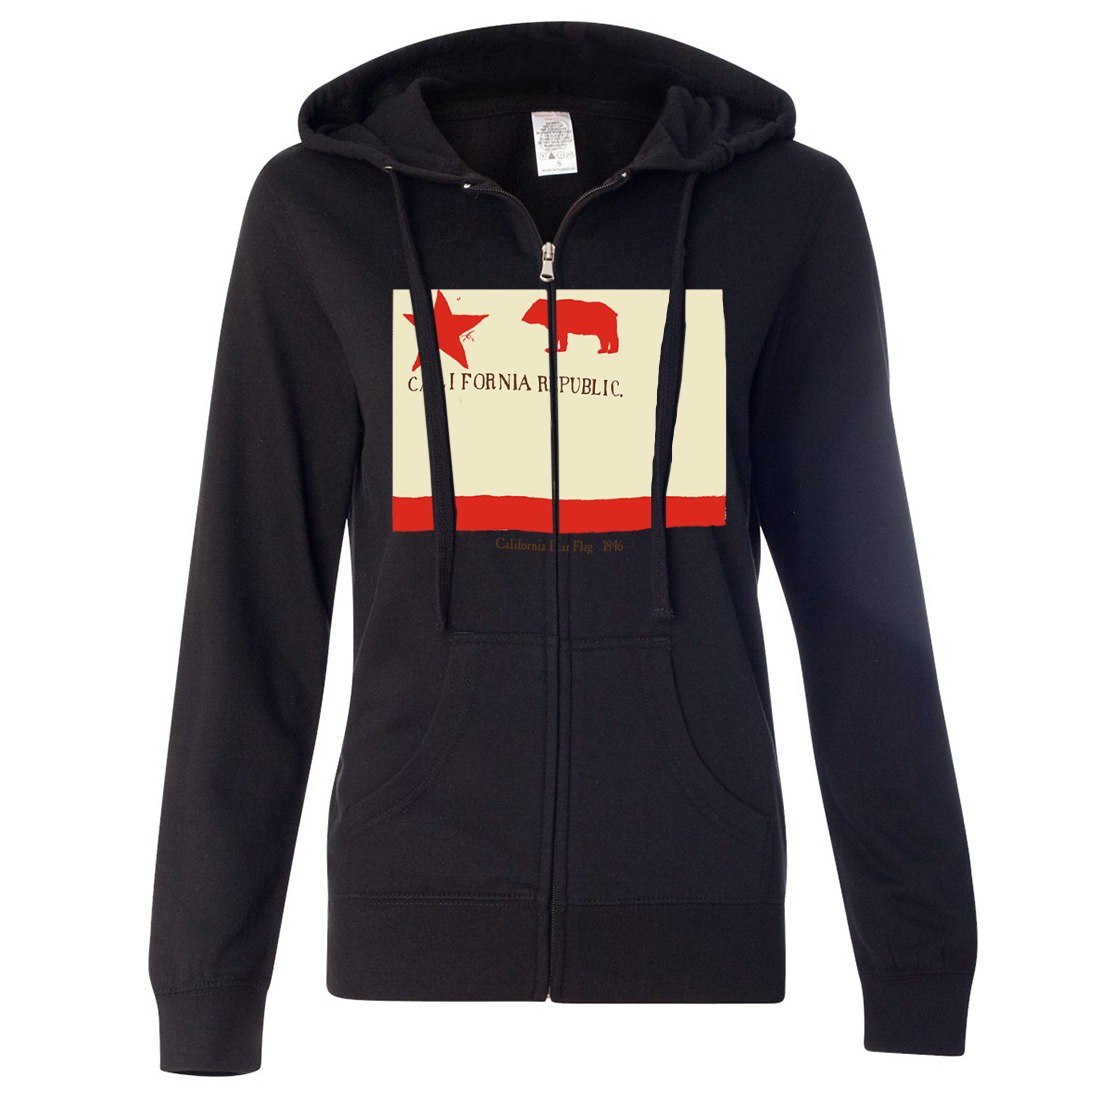 California Republic Bear Flag 1846 Ladies Lightweight Fitted Zip-Up Hoodie